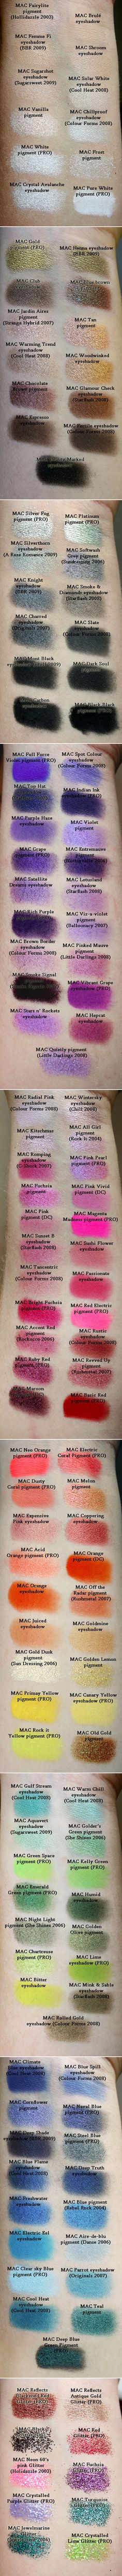 MAC EYESHADOW :: A large selection of MAC shadow swatches from neutrals to brights to glitters...